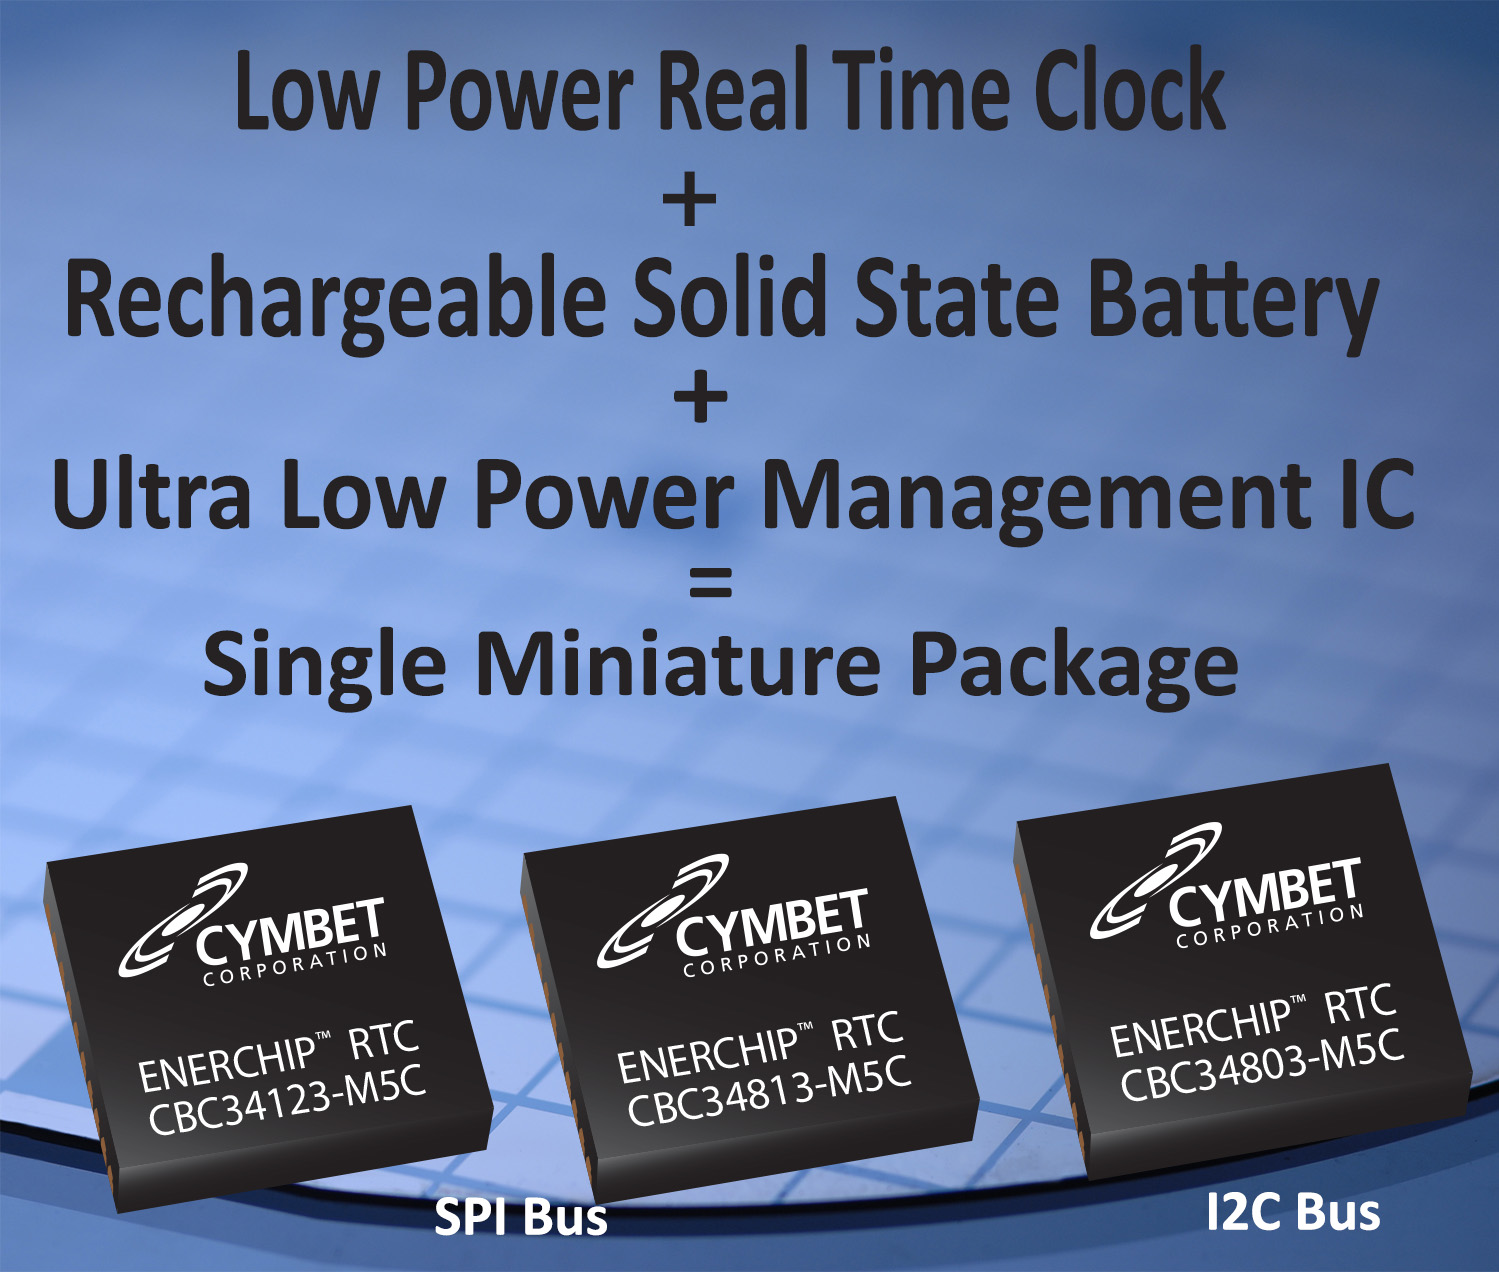 Cymbet Launches Ultra-low Power EnerChip™ RTC with Integrated Battery